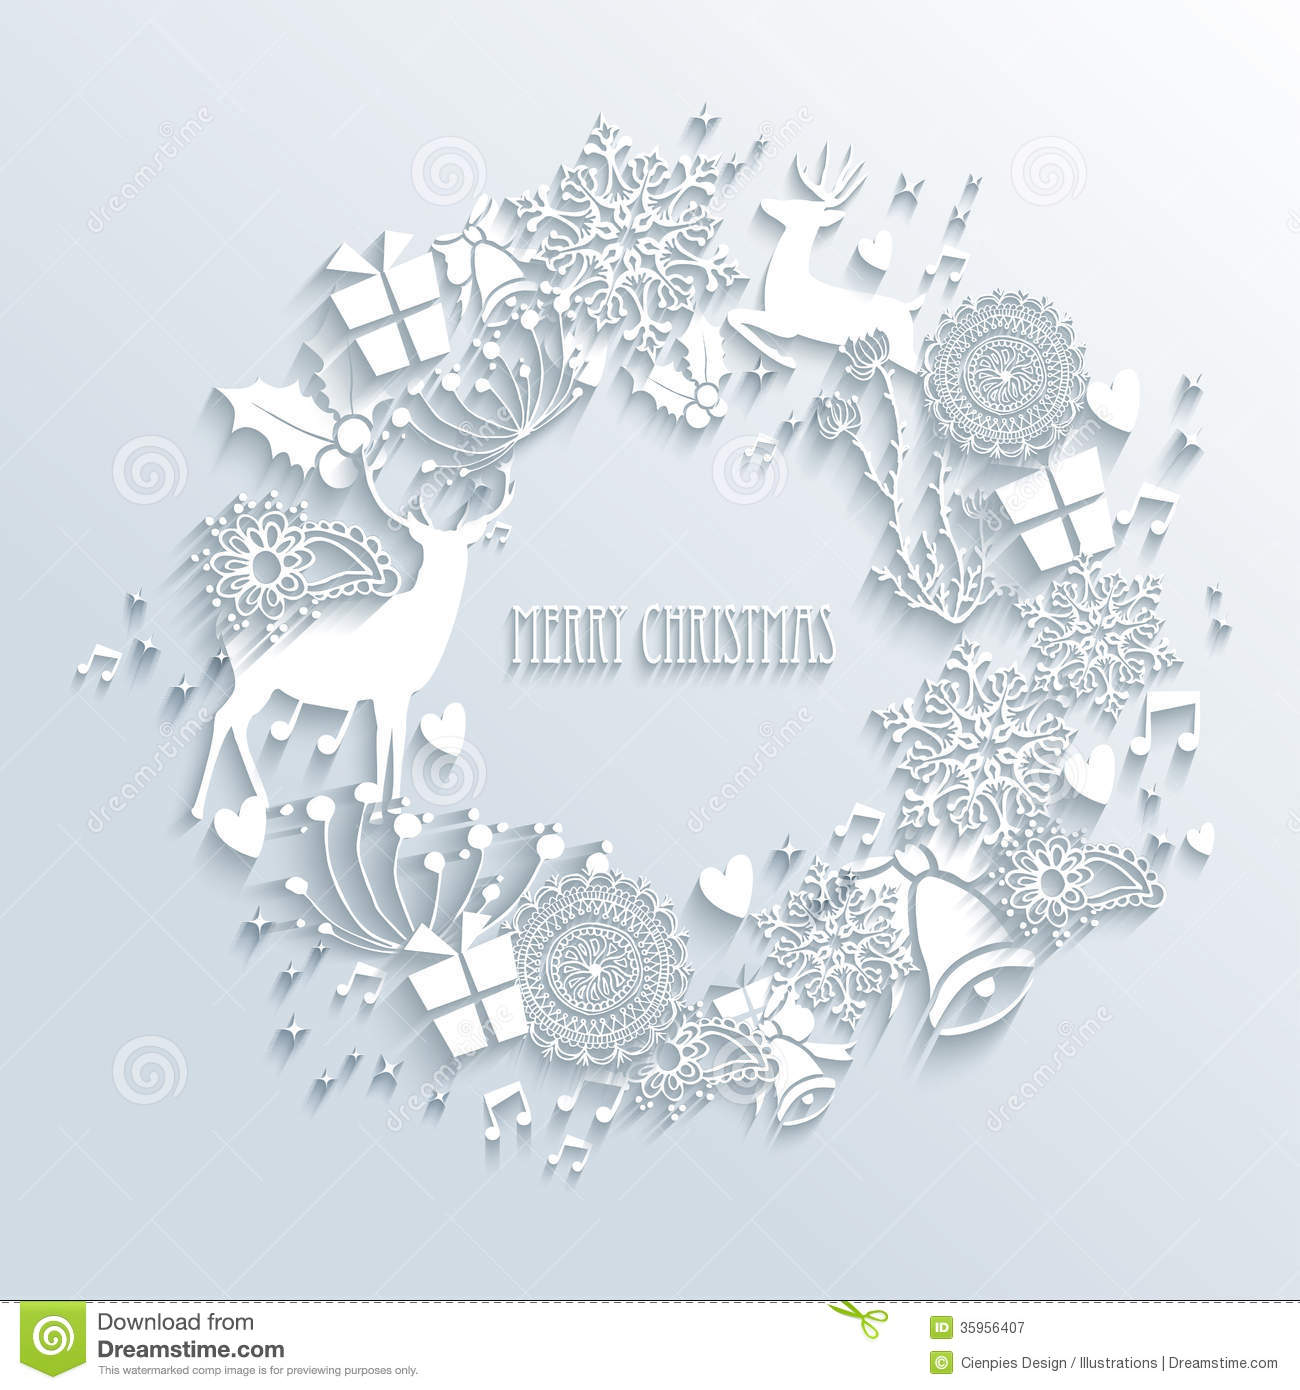 White Merry Christmas Wreath Greeting Card Stock Vector - Image: 35956407